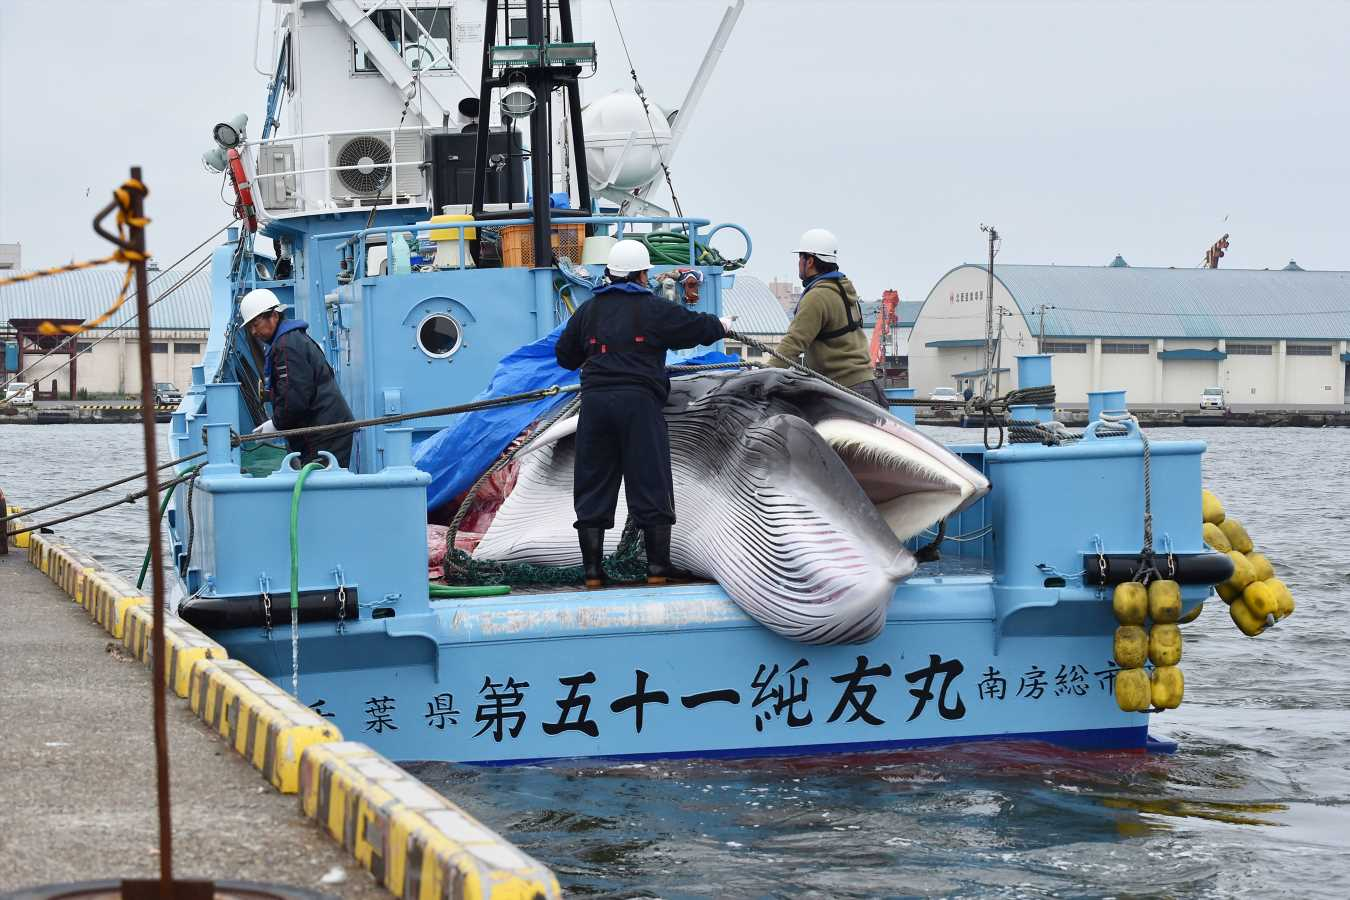 Japan Resumes Commercial Whaling After Three-Decade Break and Kills Two Whales on the First Day